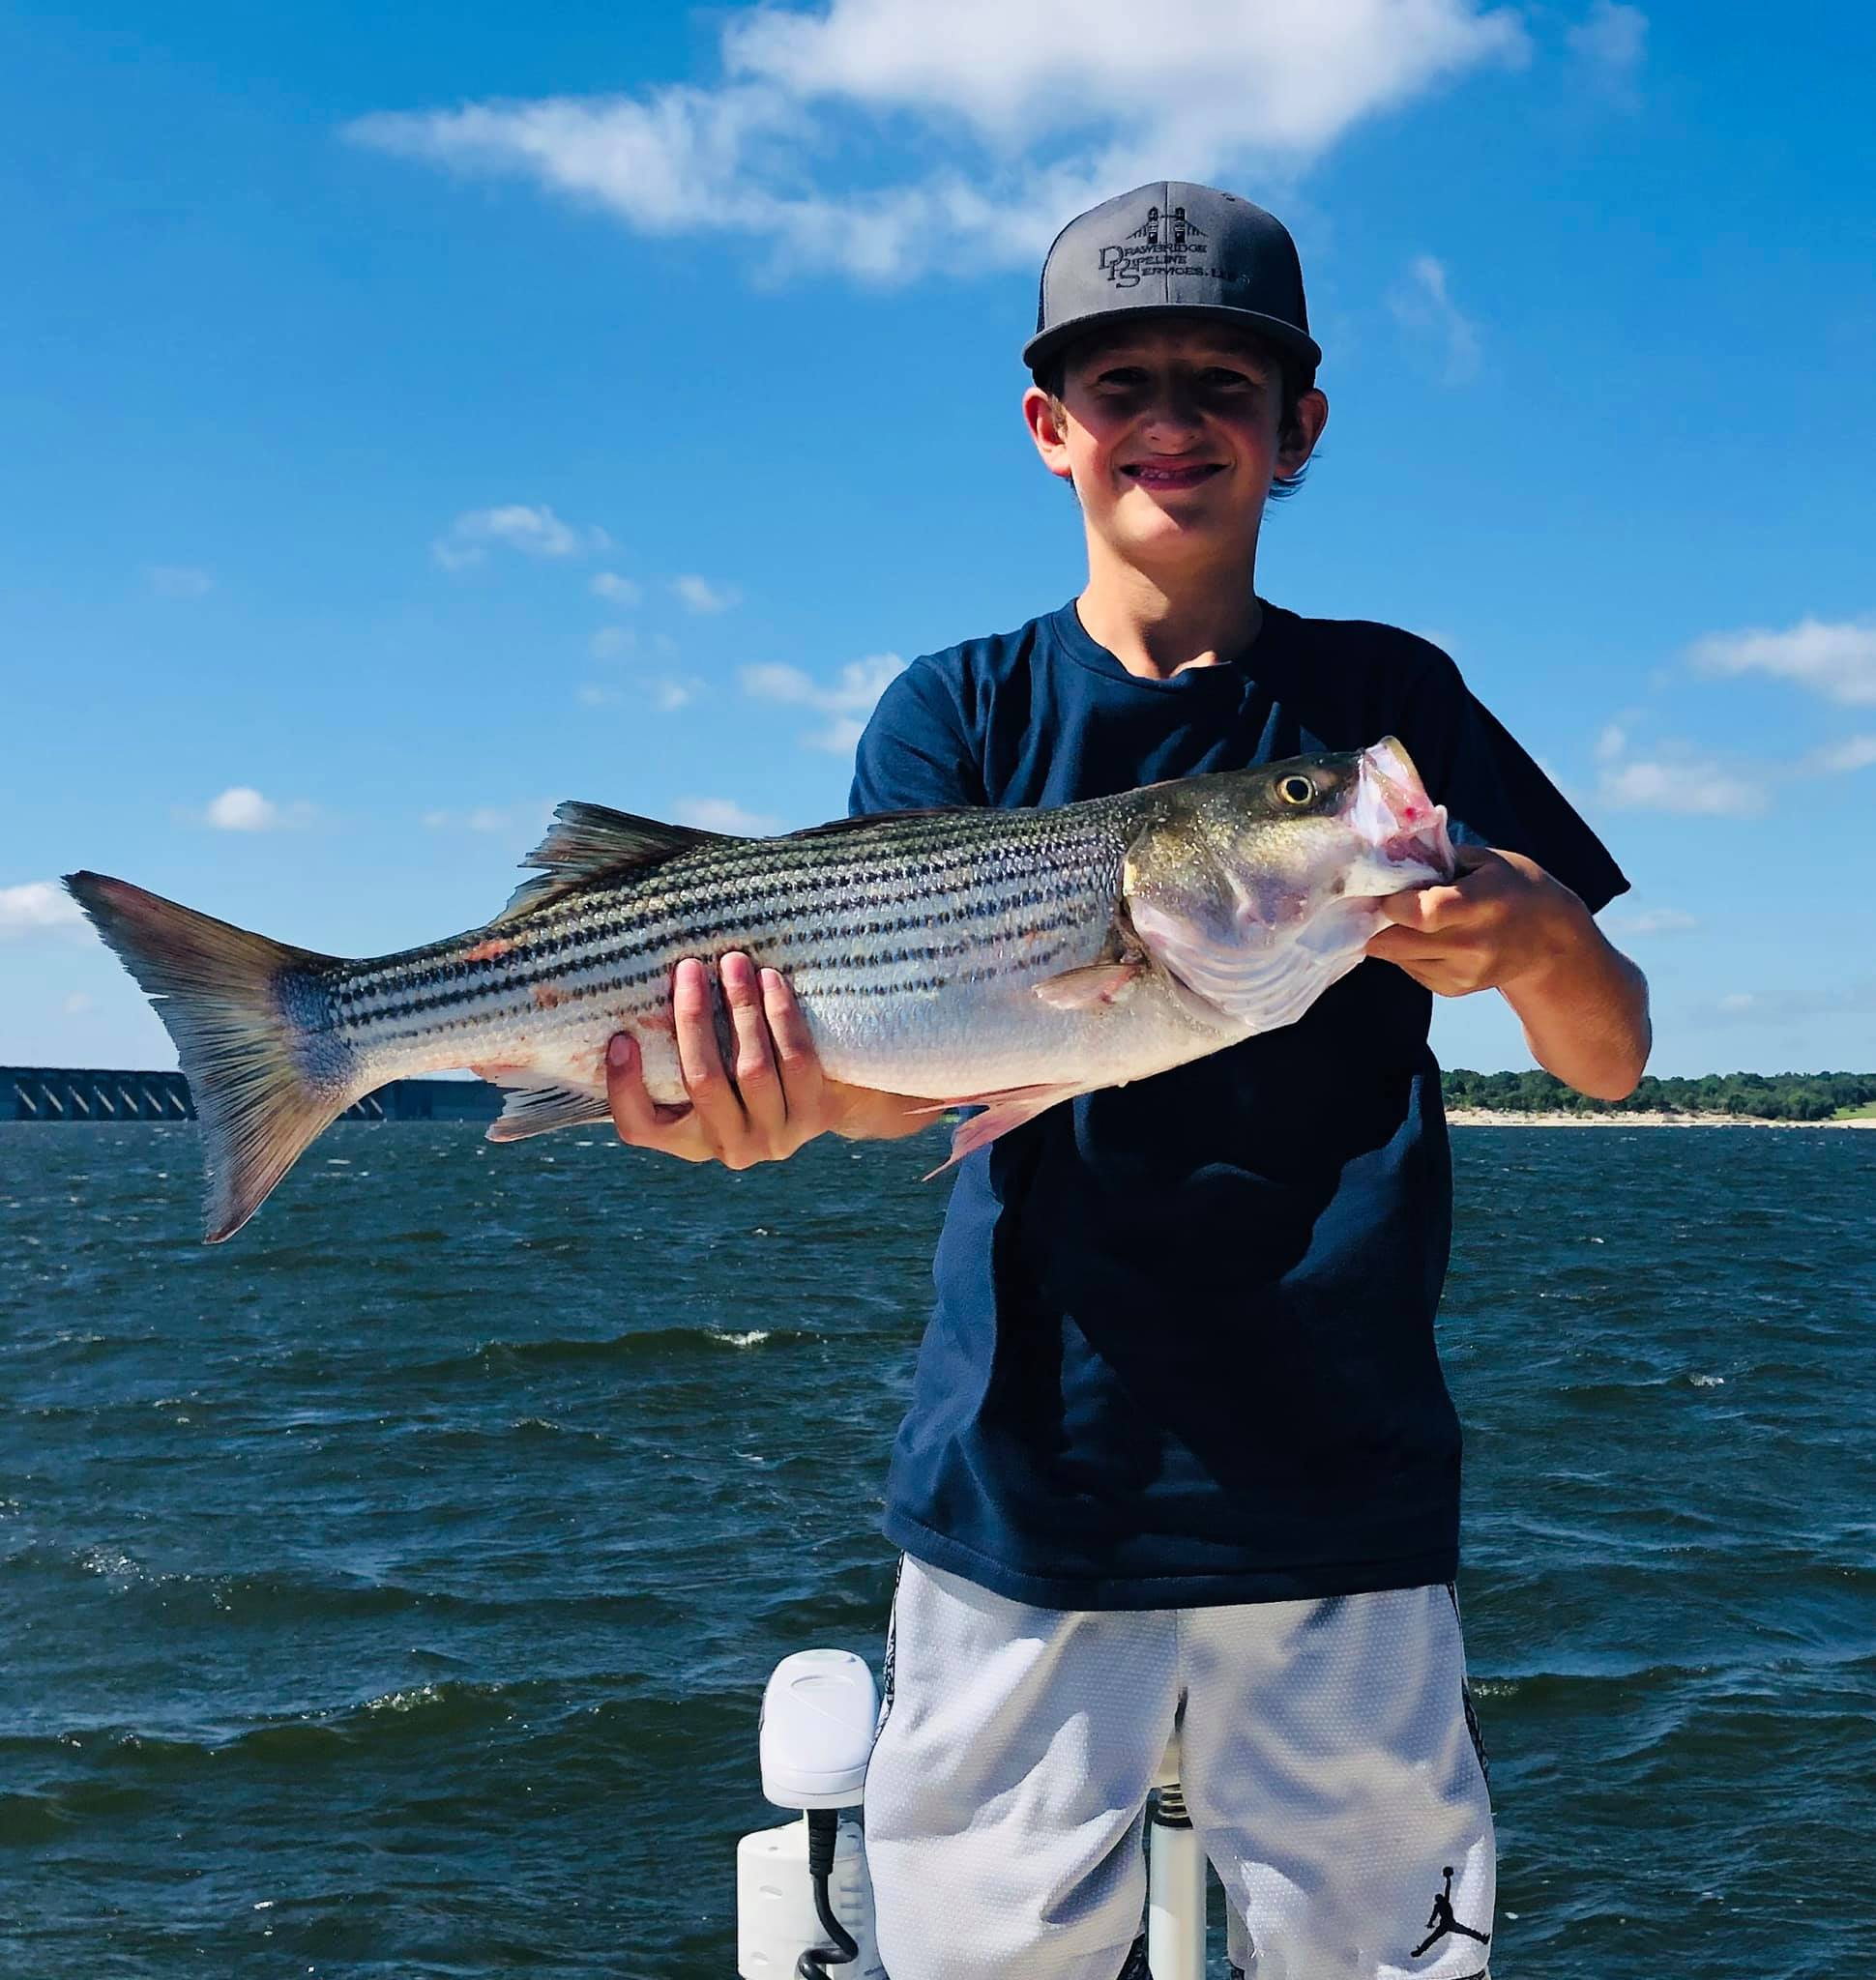 striper-fishing-on-lake-whitney-1564885038956662071